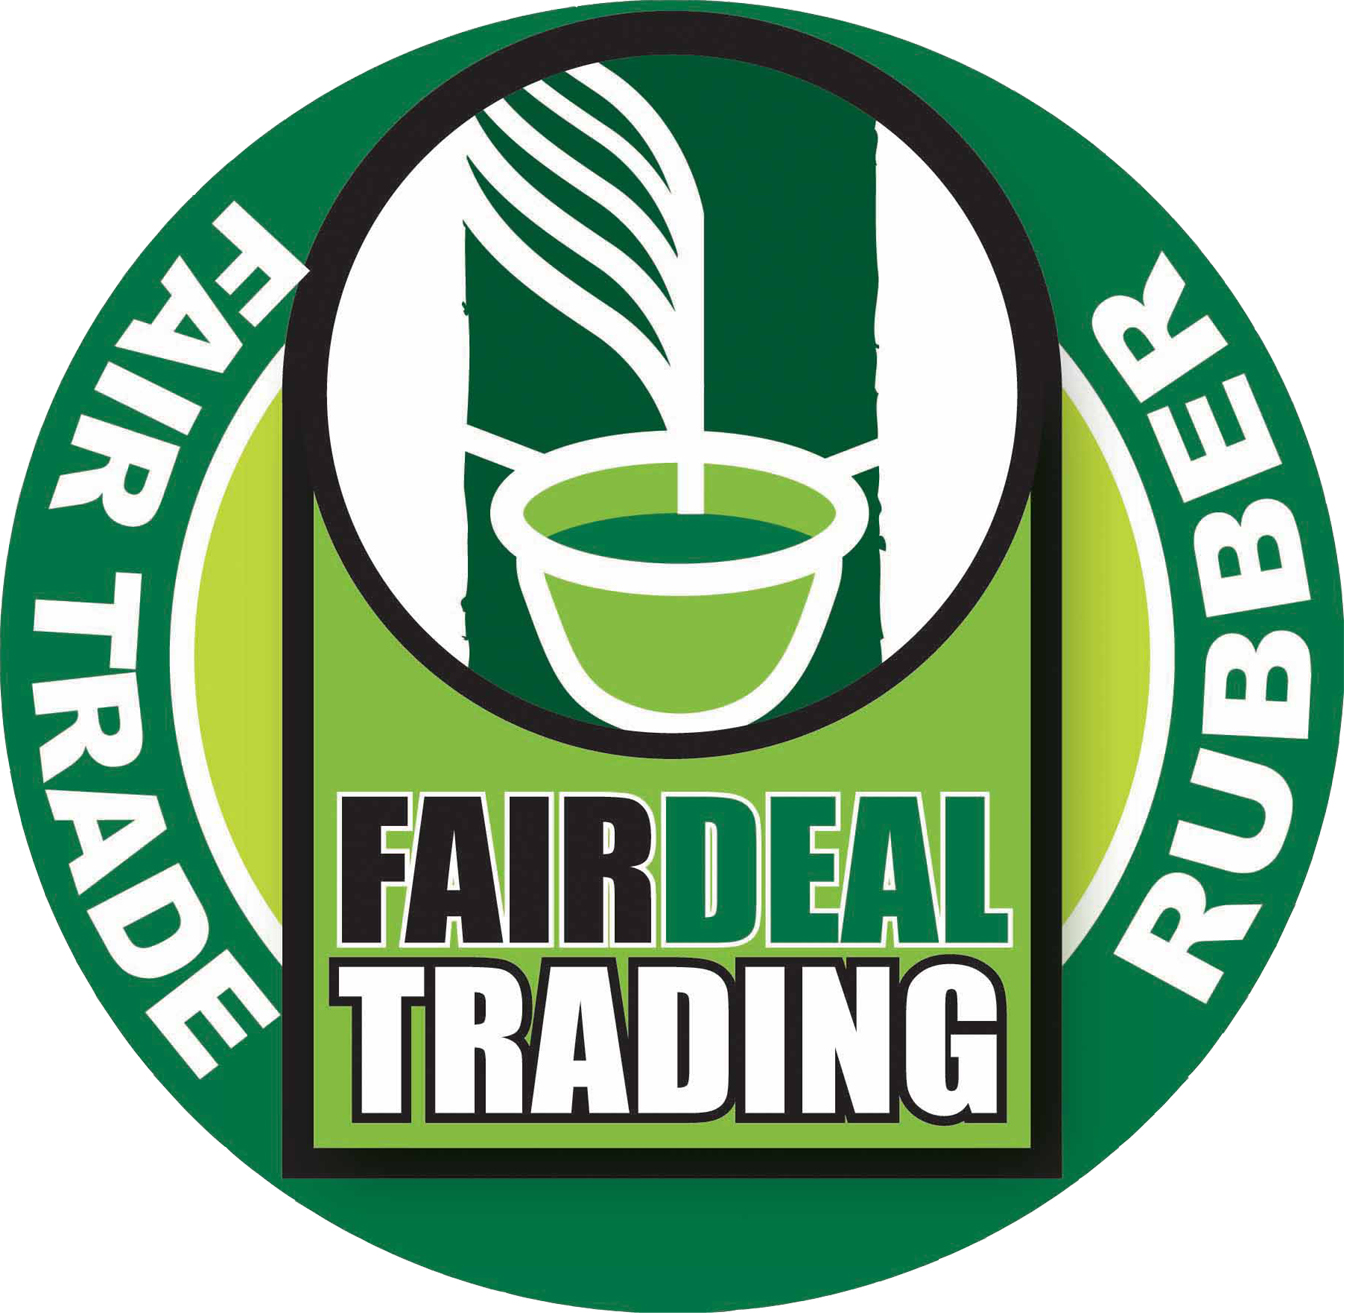 FAIRDEAl Rubber TRAIDING Logo